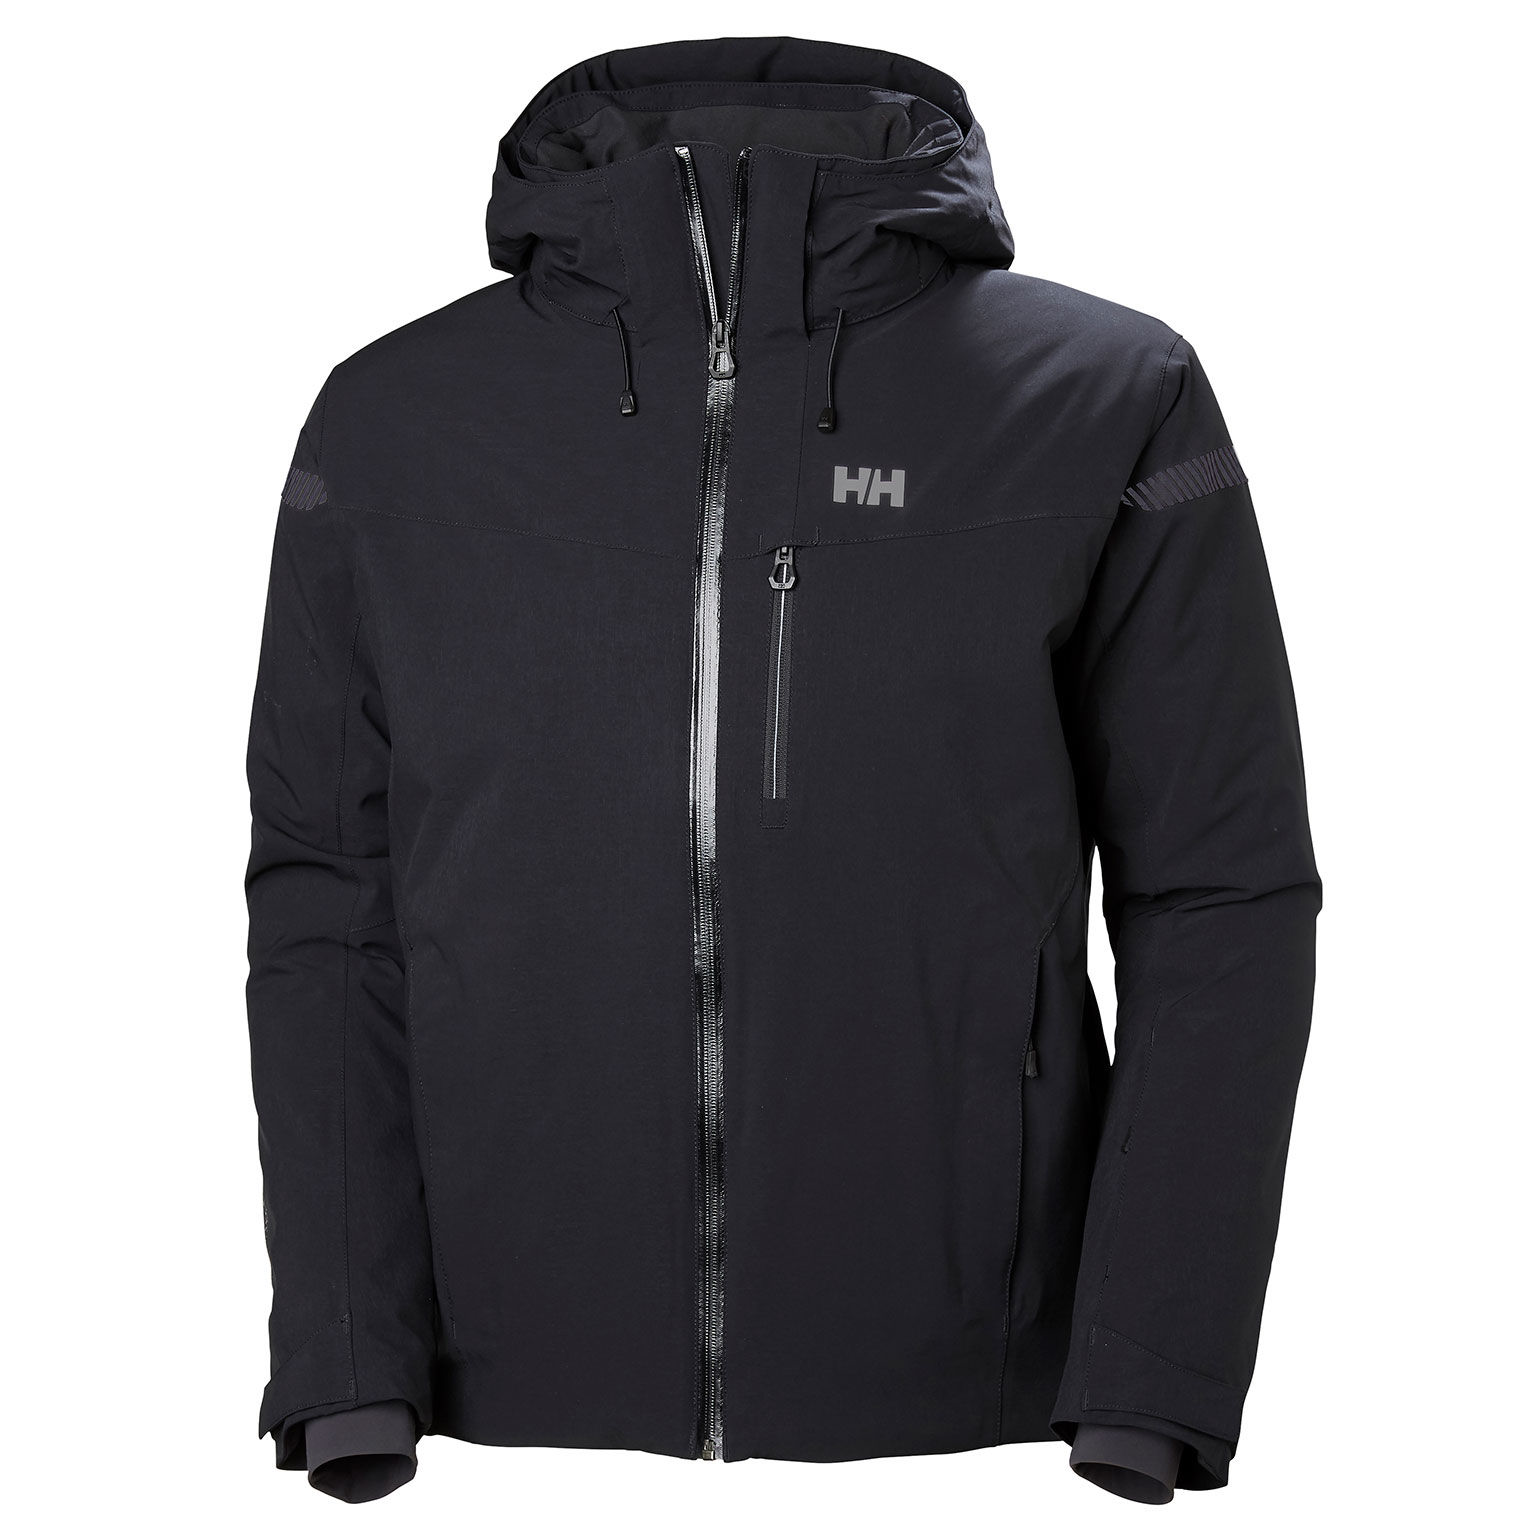 2019 Helly Hansen Swift 4.0 Jacket